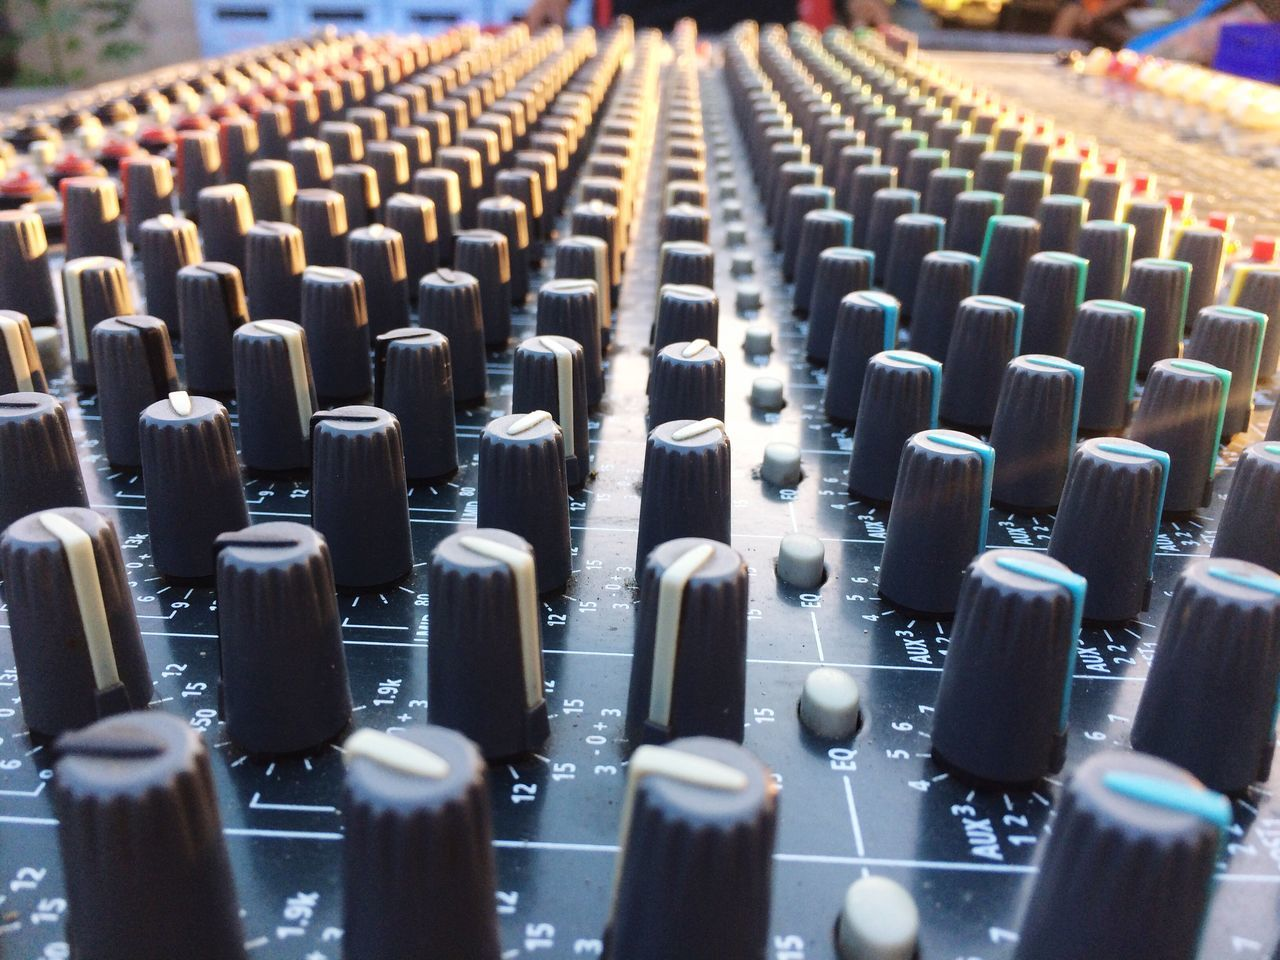 music, in a row, sound mixer, arts culture and entertainment, mixing, indoors, sound recording equipment, recording studio, musical instrument, technology, day, no people, close-up